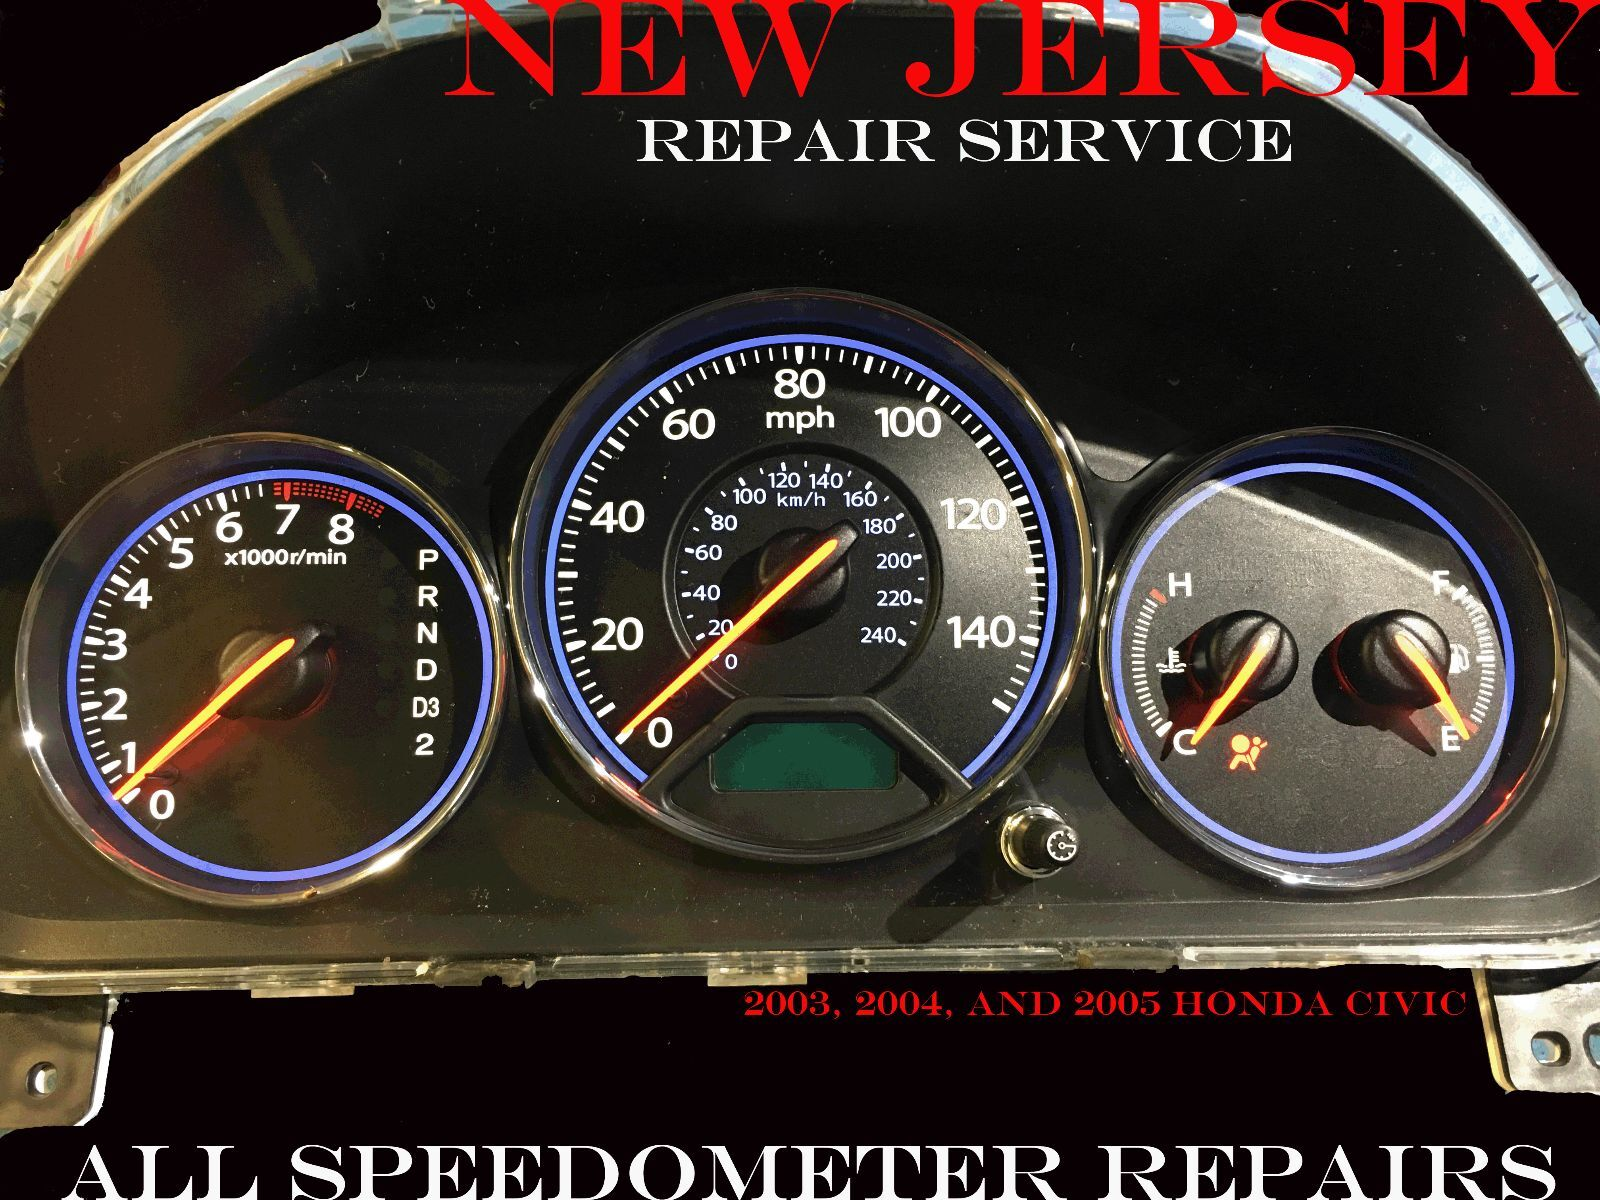 01 02 03 04 05 Honda CIVIC SPEEDOMETER INSTRUMENT CLUSTER GAUGES REPAIR SERVICE